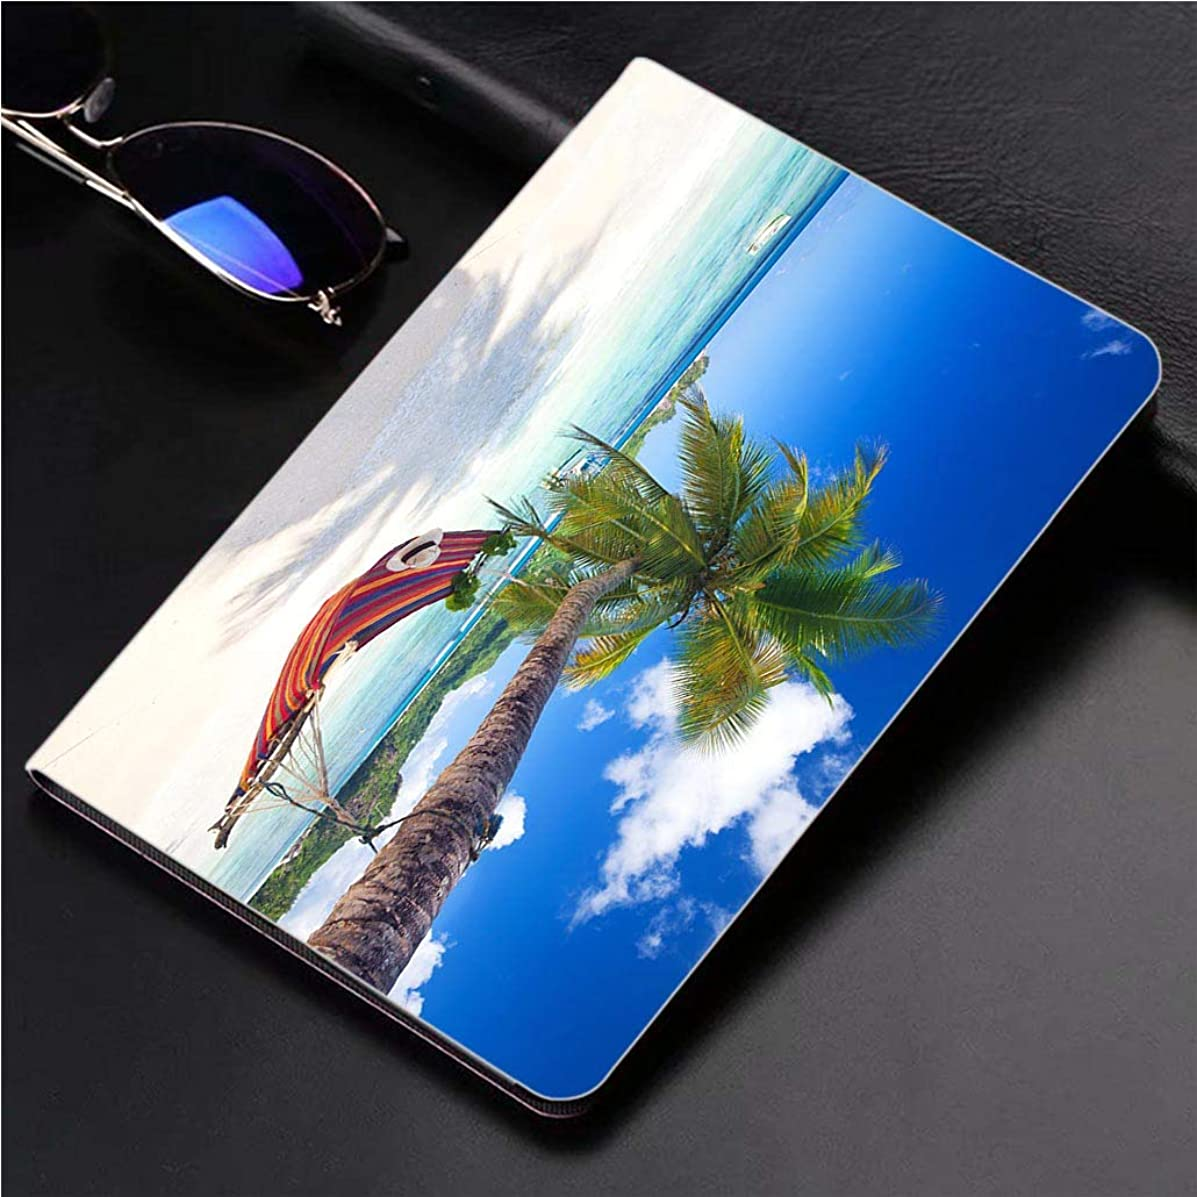 Compatible with 3D Printed iPad Pro 10.5 Case Tropical Paradise Beach 360 Degree Swivel Mount Cover for Automatic Sleep Wake up ipad case